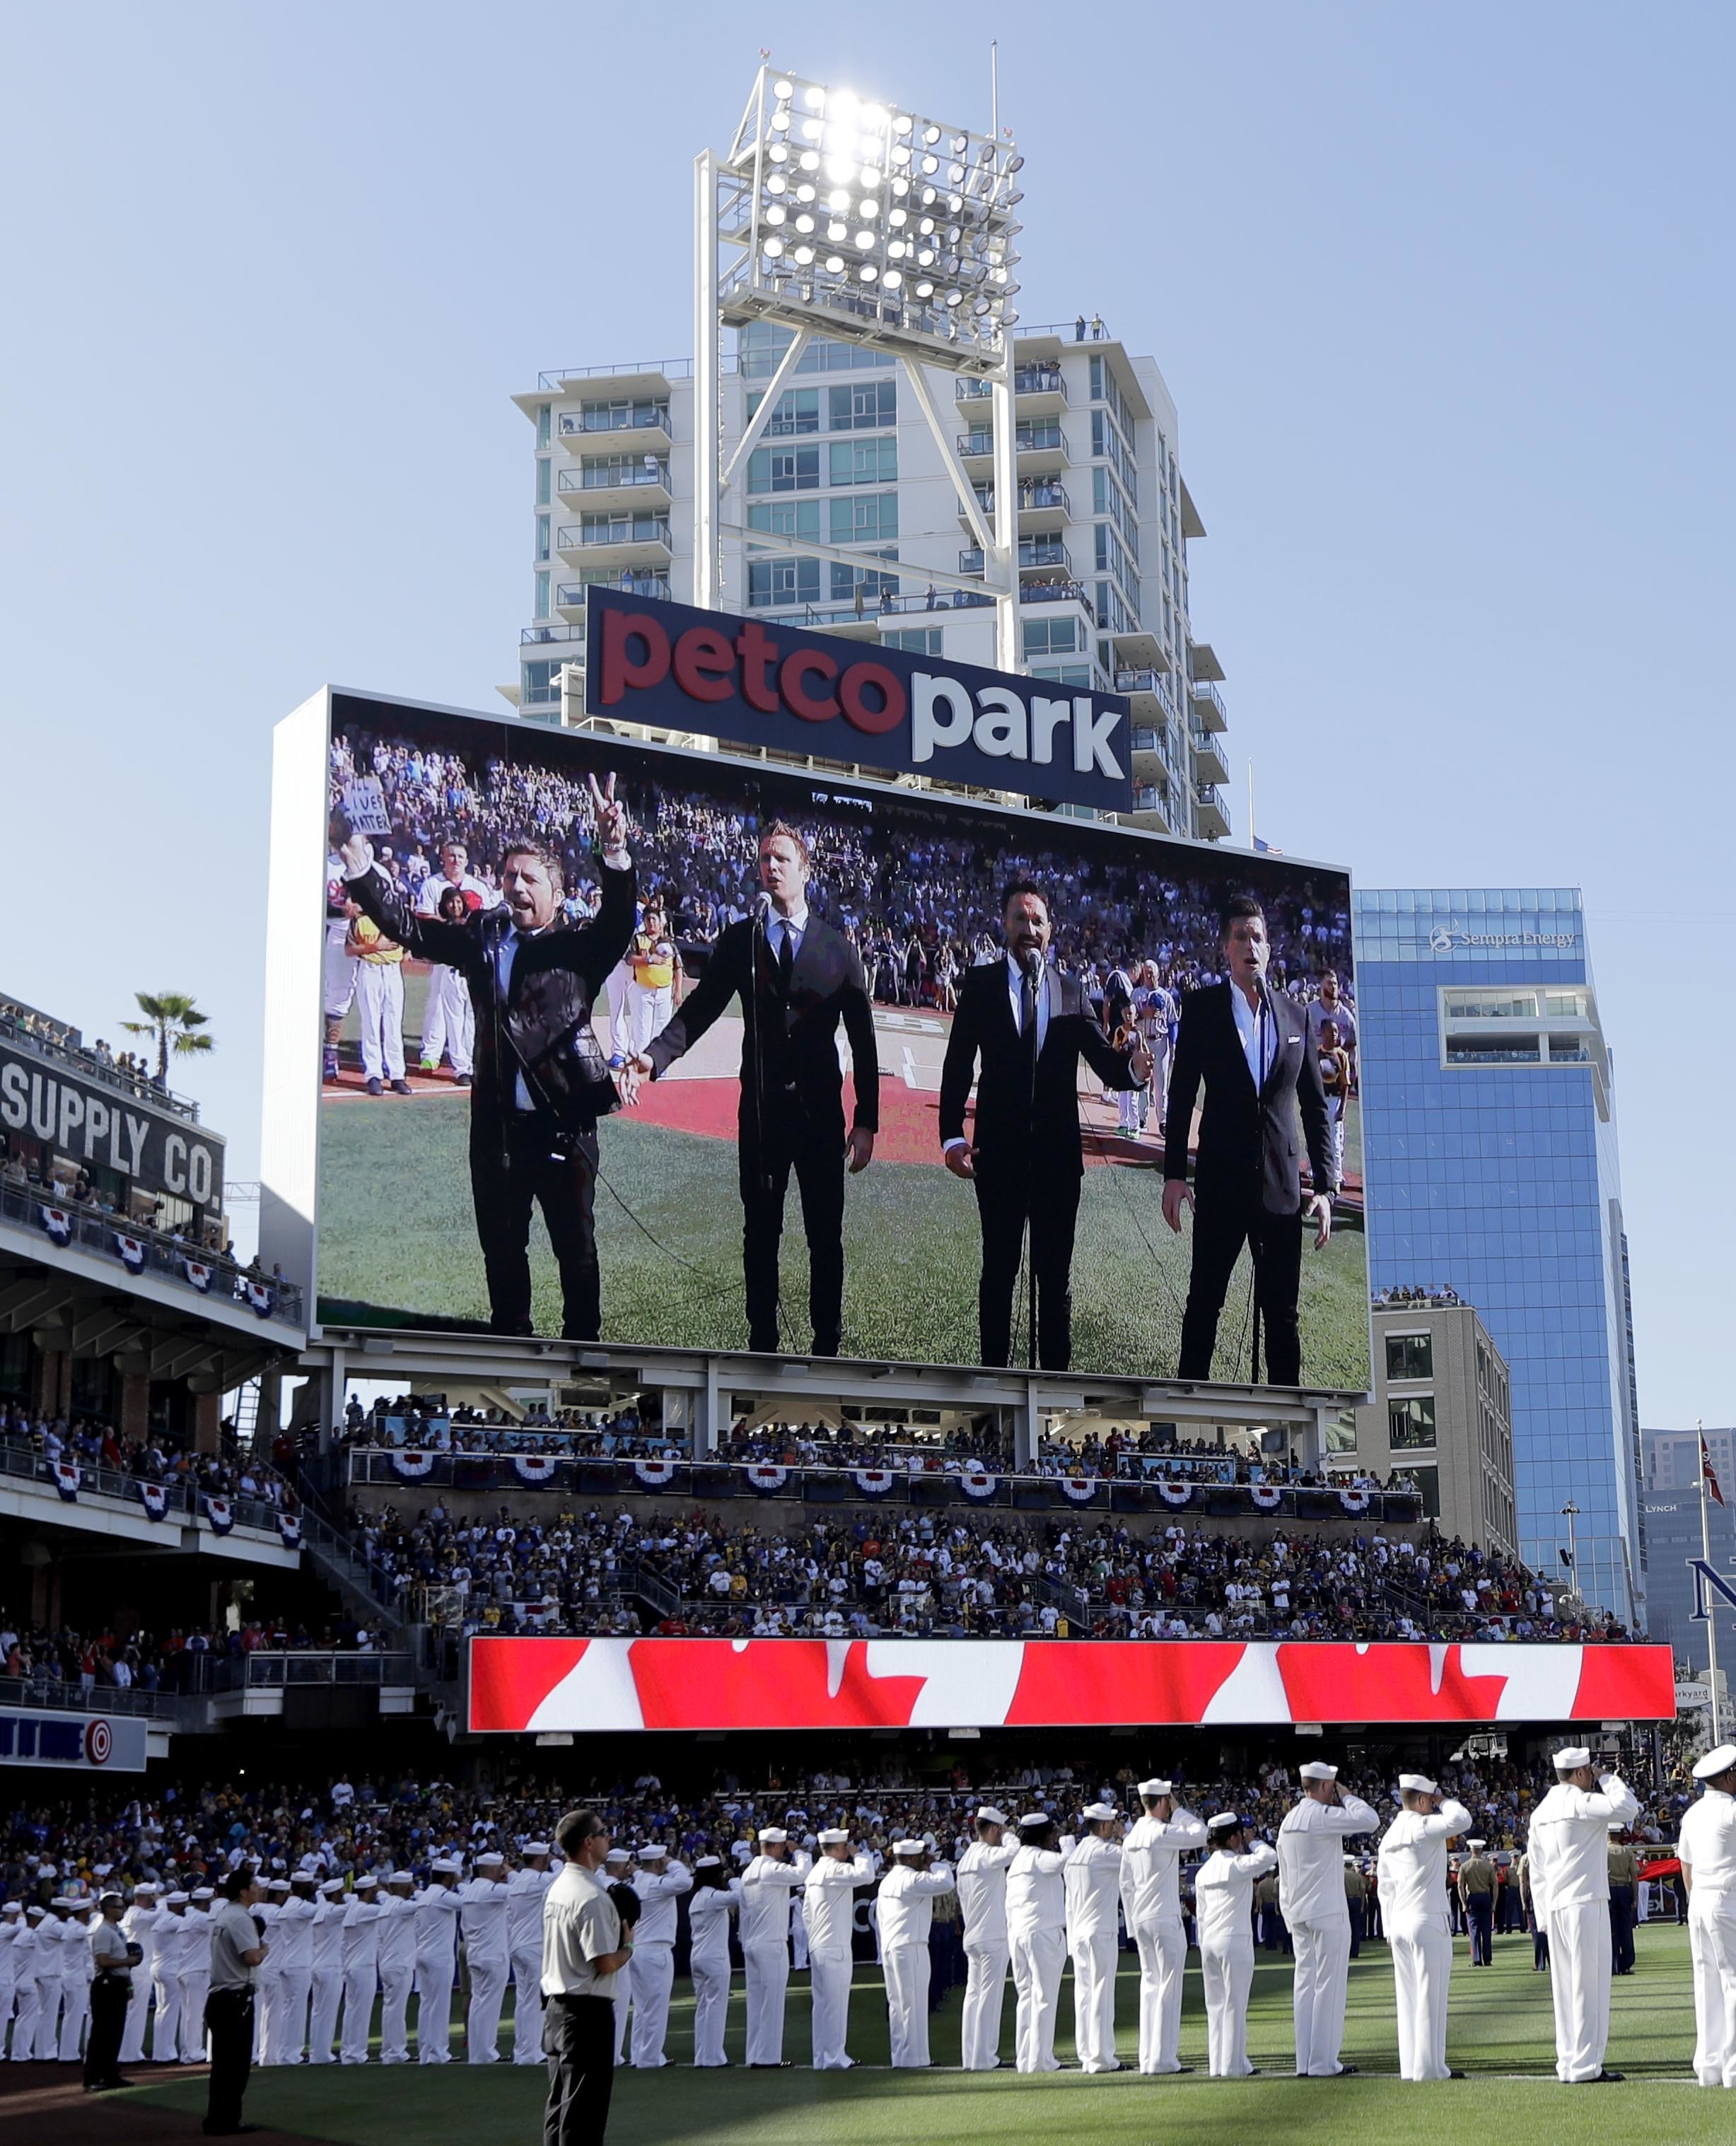 FILE - In this Tuesday, July 12, 2016 file photo, The Tenors, shown on the scoreboard, perform during the Canadian National Anthem prior to the MLB baseball All-Star Game, in San Diego. A member of a Canadian singing quartet changed a lyric in his country